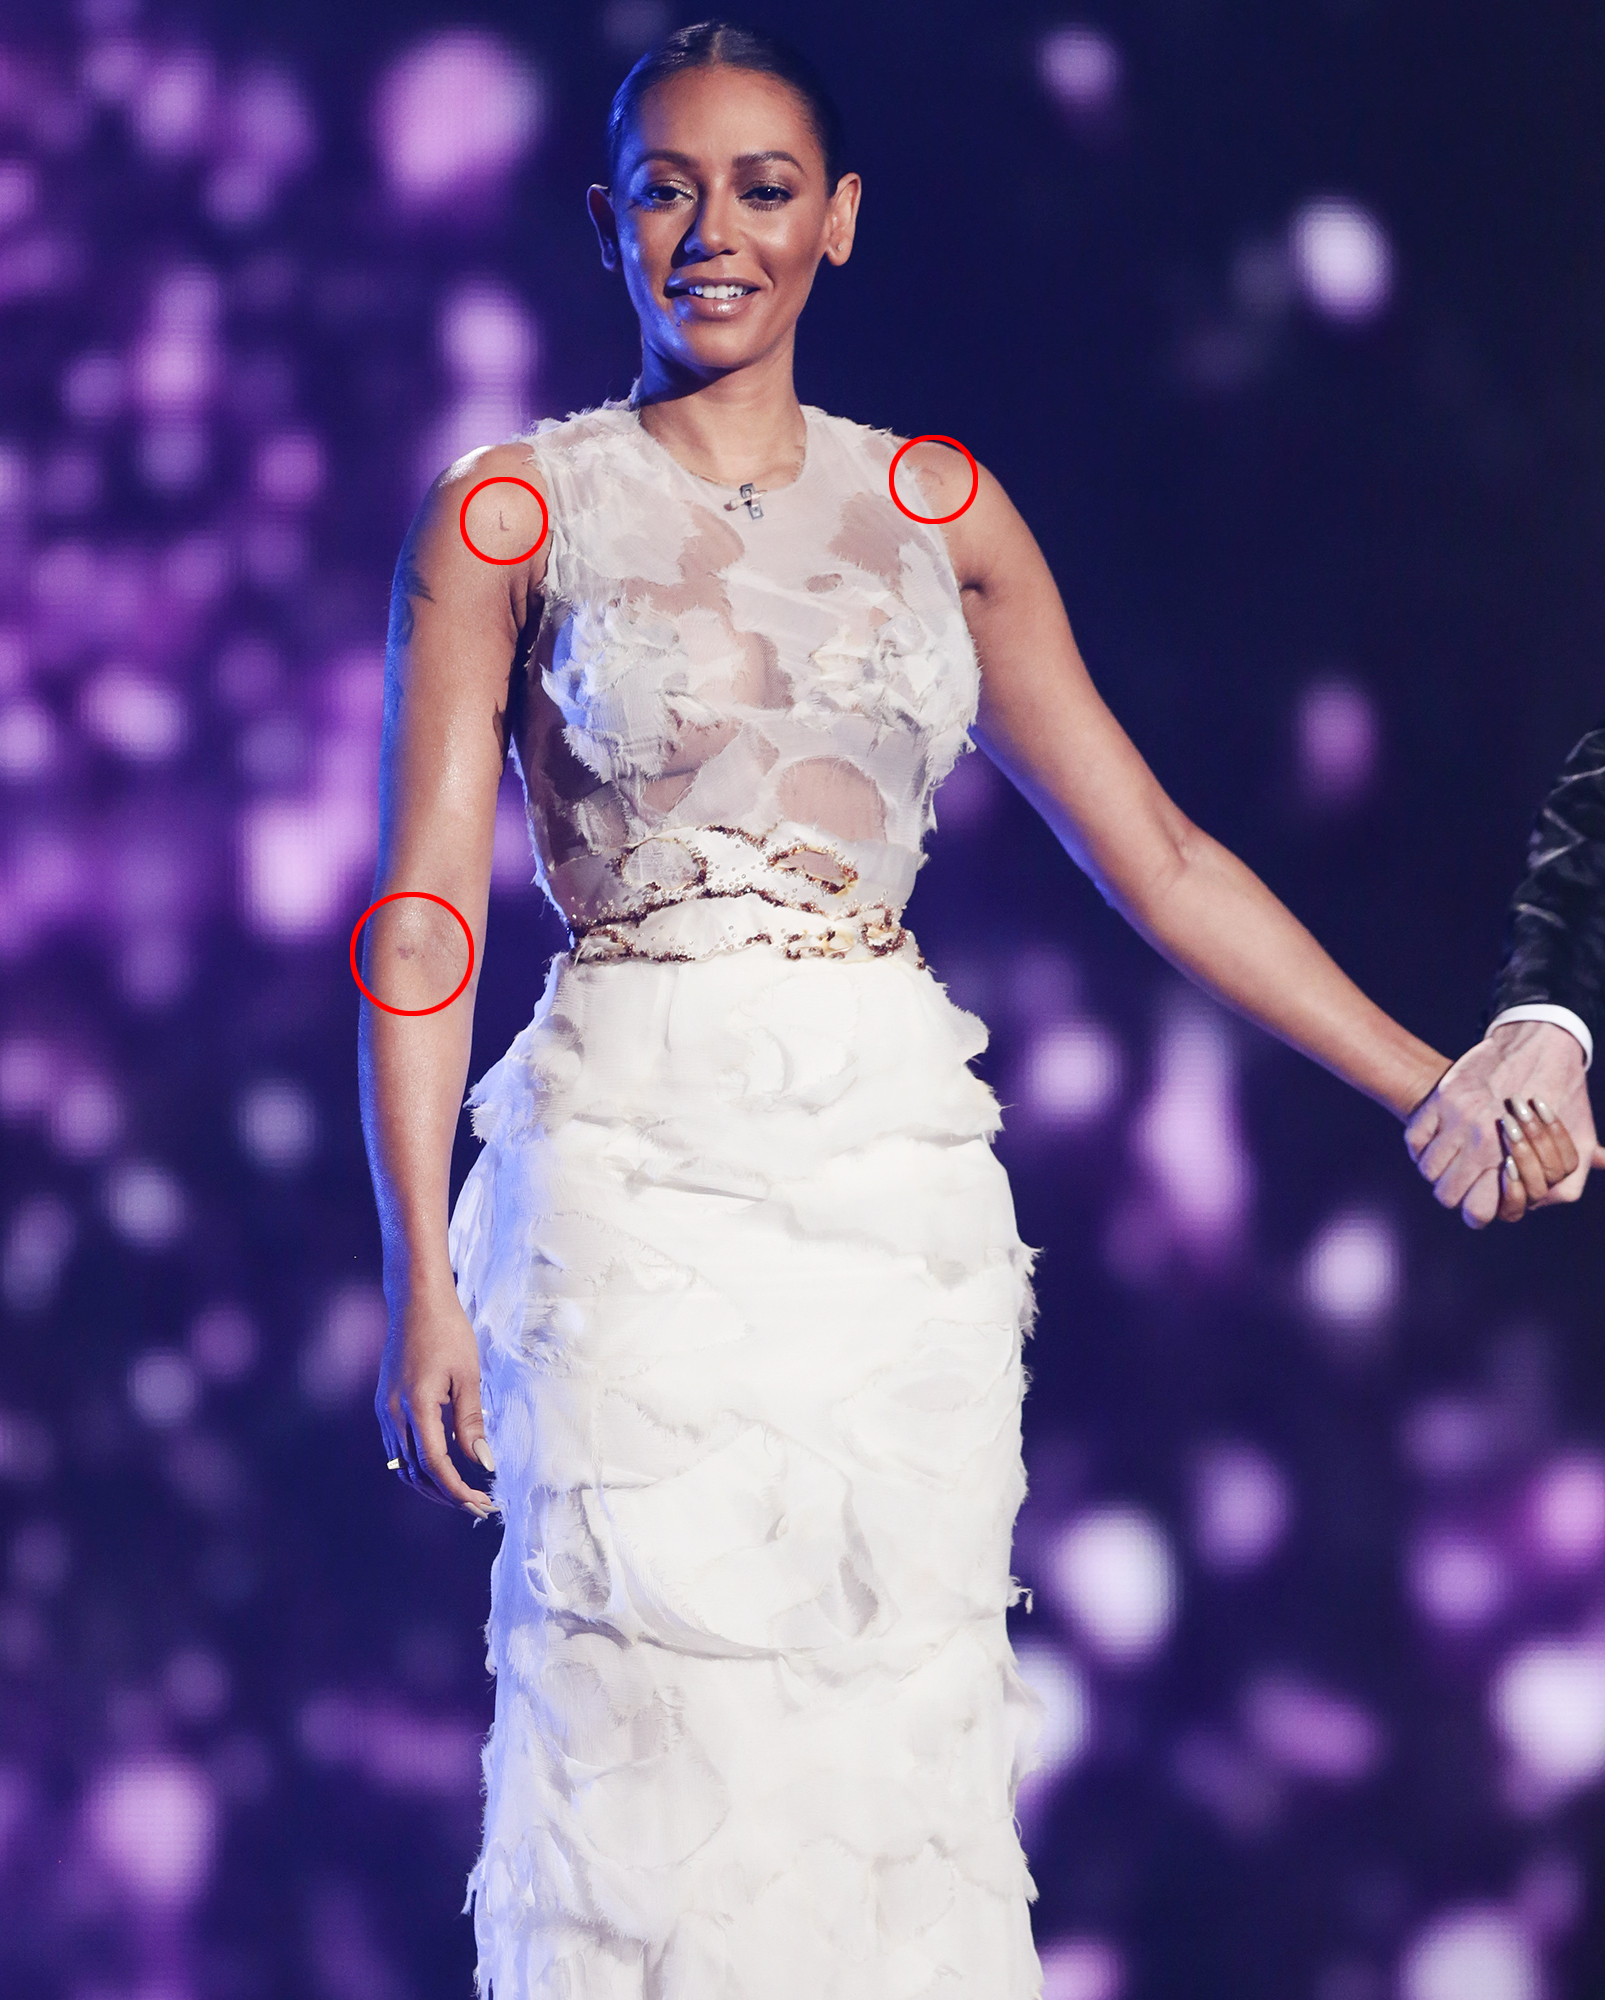 X Factor judges Mel B and Cheryl Fernandez-Versini are seen at the live X Factor final in London.